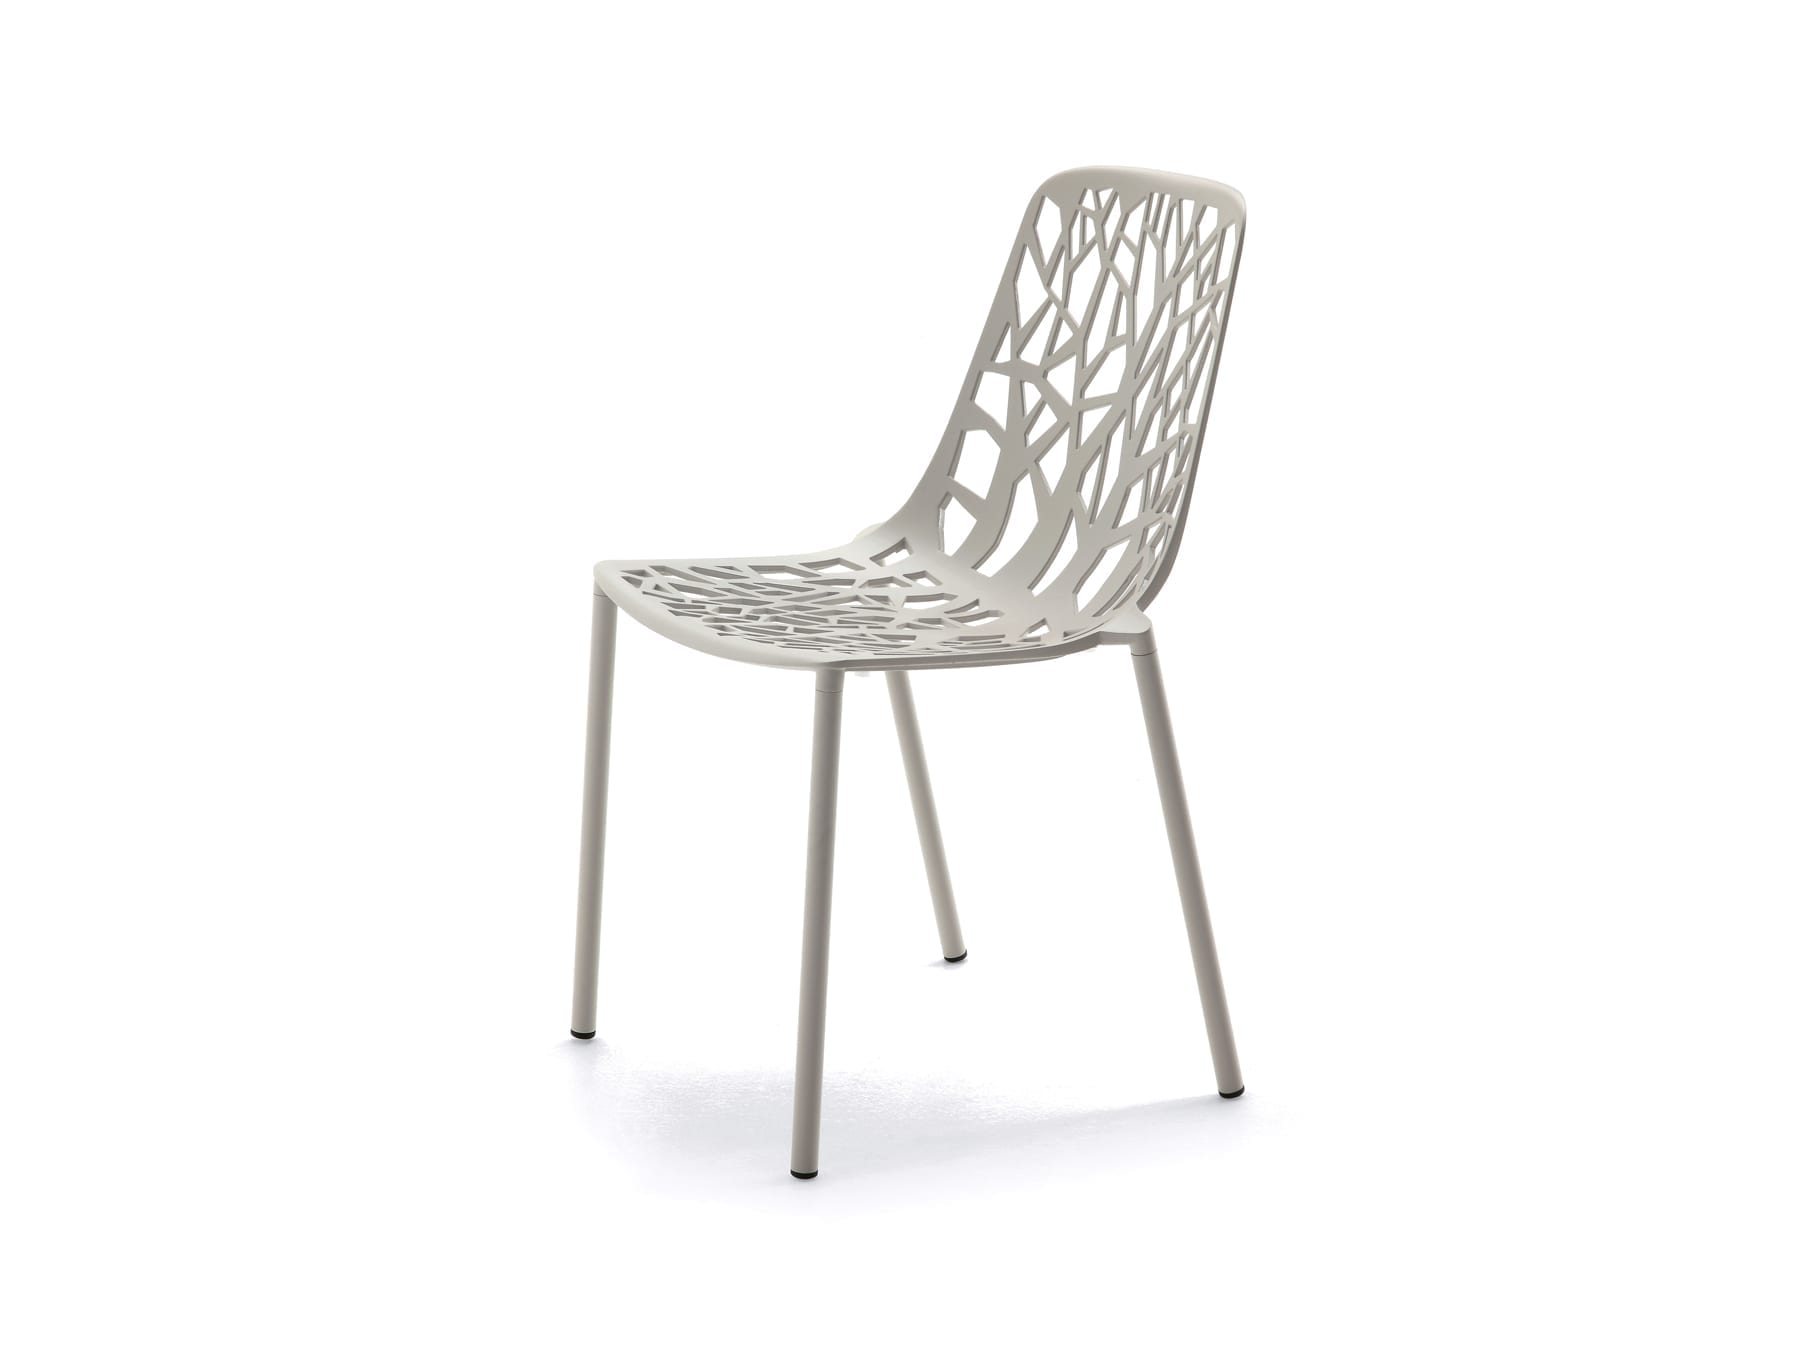 Awe Inspiring Fast Forest Dining Chair Ibusinesslaw Wood Chair Design Ideas Ibusinesslaworg